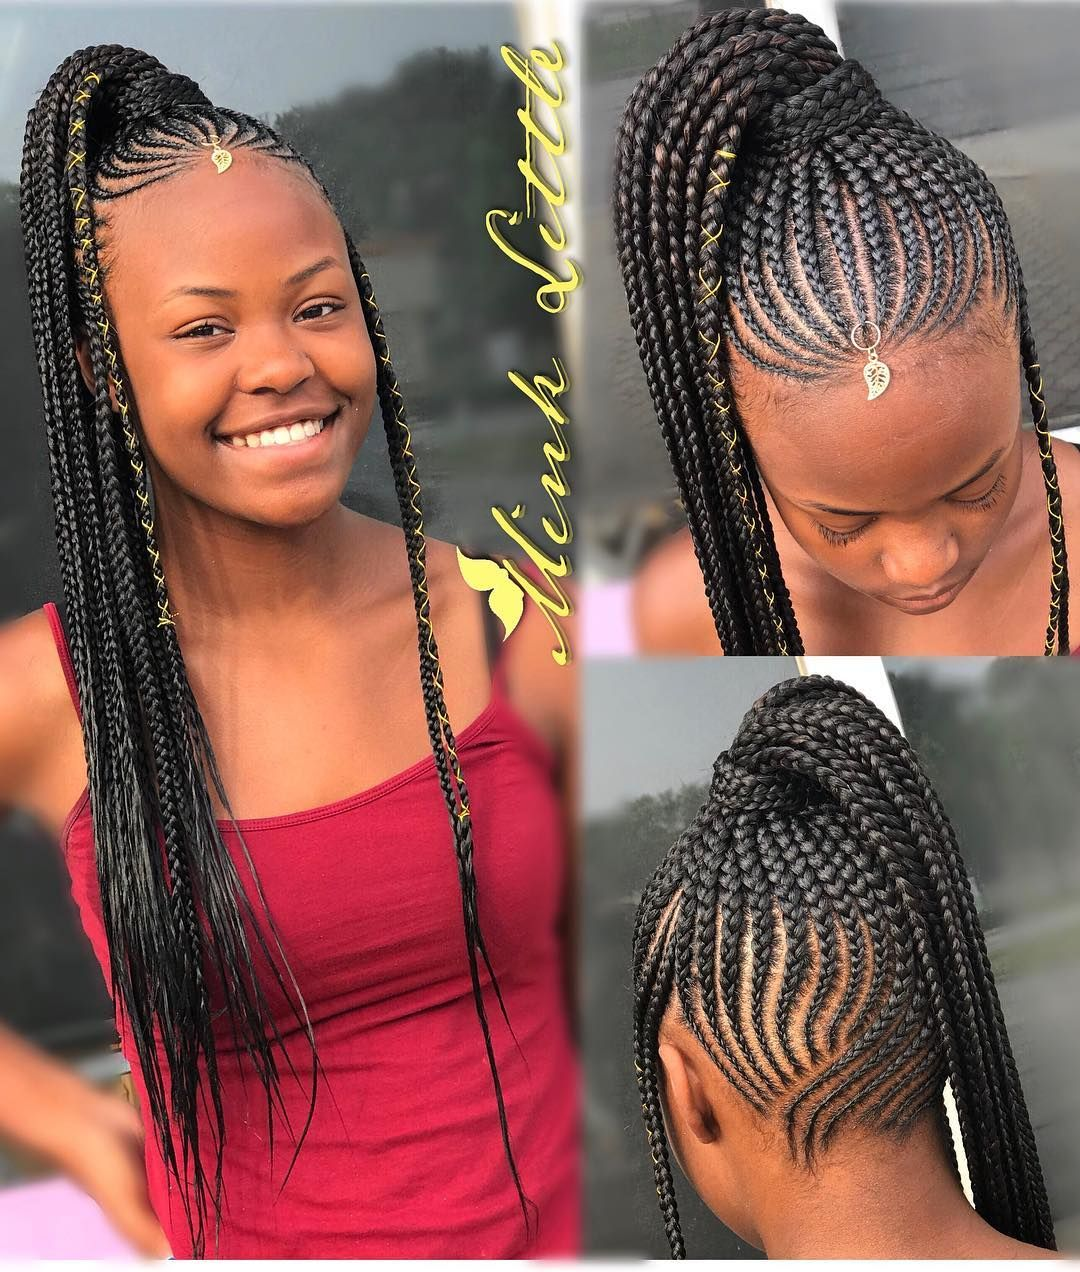 Small Feed In Ponytail Feedins Feedinbraids Feedincornrows Minklittle Minklittle Feed In Braids Hairstyles Feed In Ponytail Braided Ponytail Hairstyles